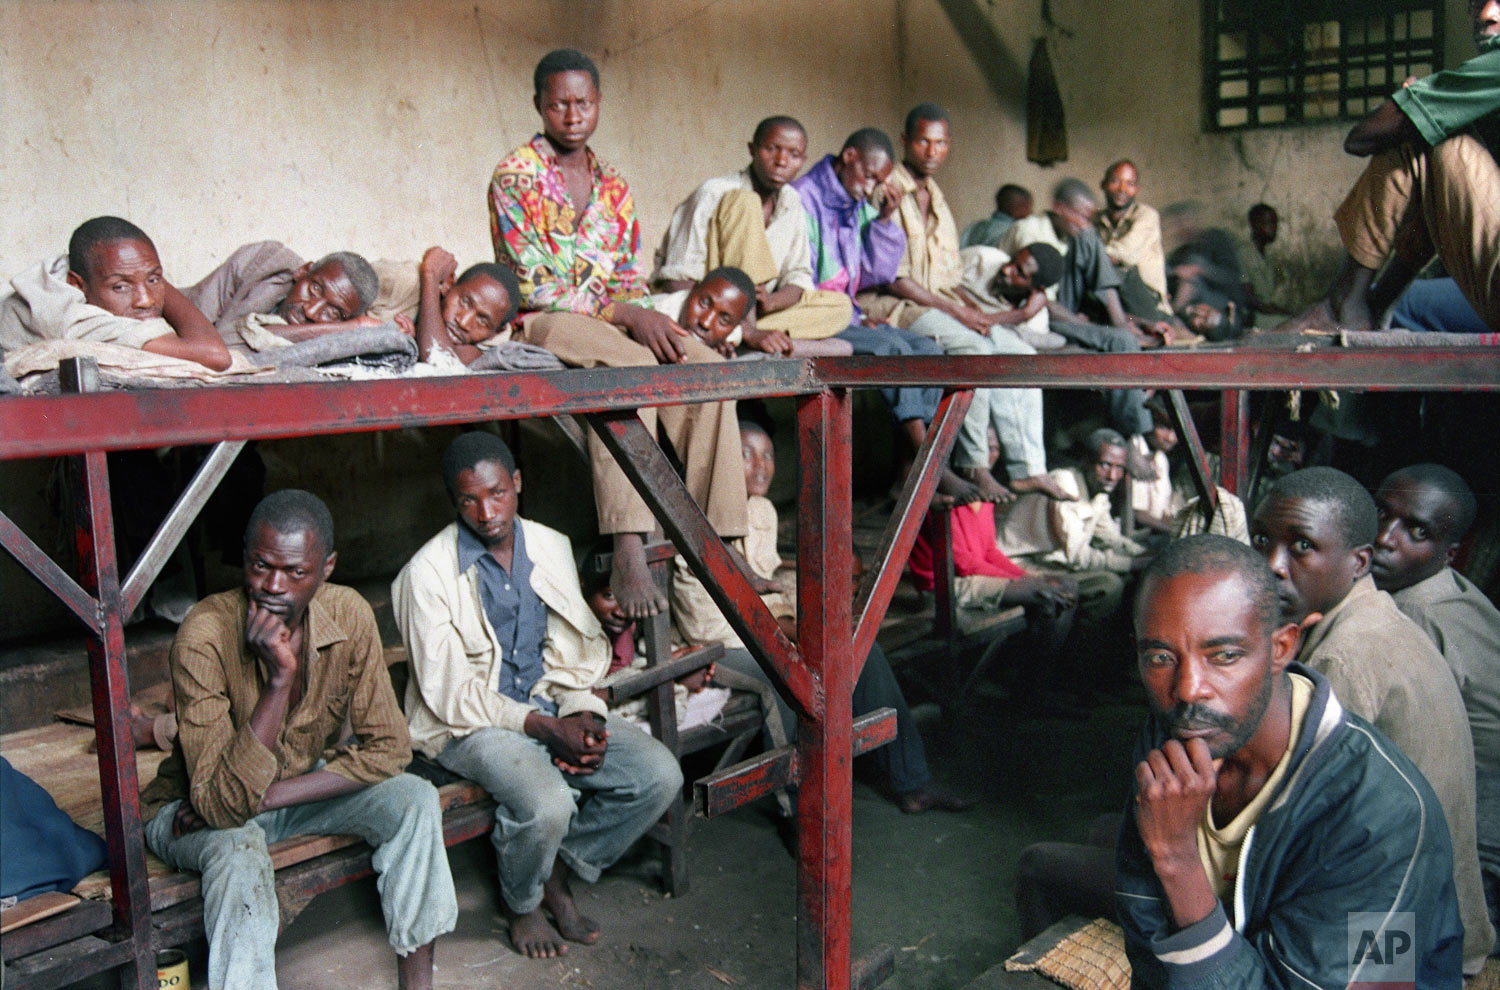 Some of the 334 inmates in a prison who are accused of committing war crimes and participating in the genocide, sit in the prison in Kibungo, Rwanda on Aug. 17, 1994. (AP Photo/Javier Bauluz)